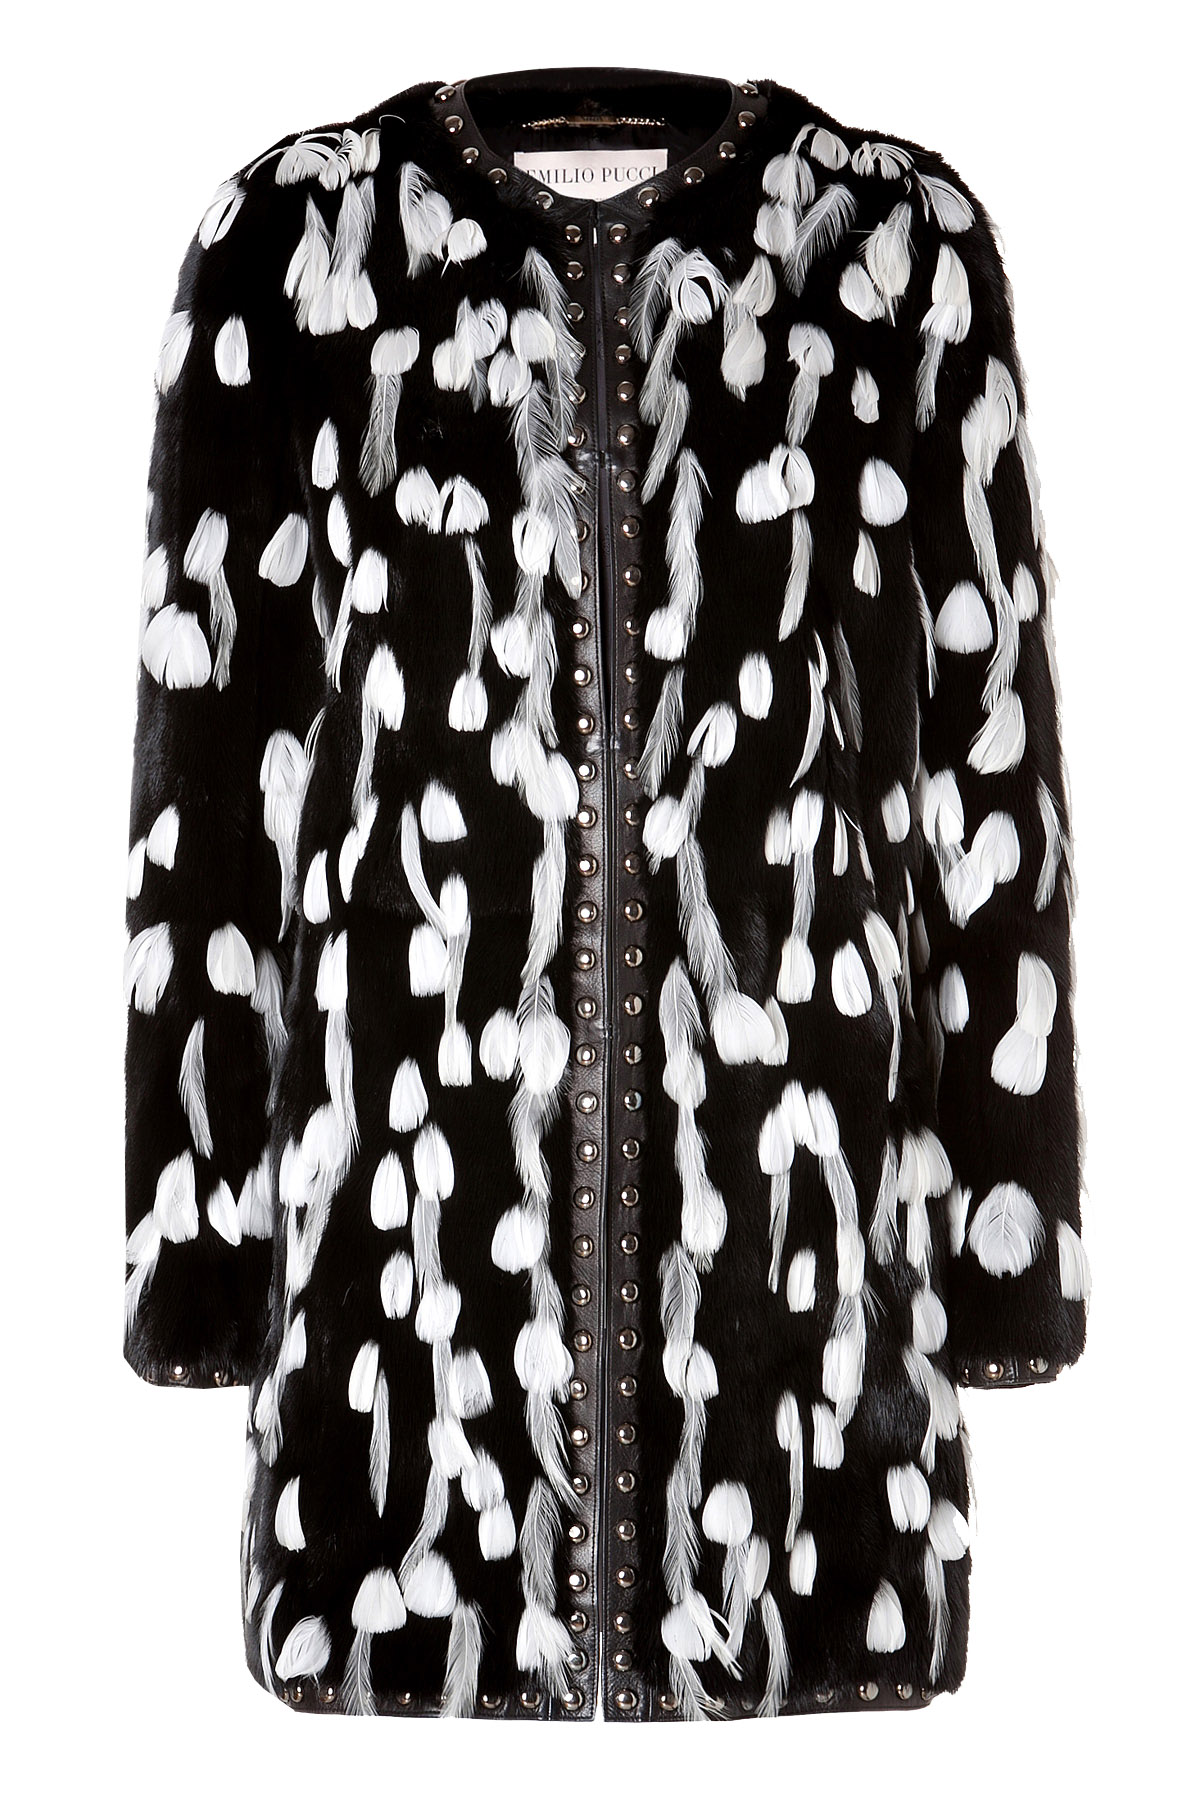 9bc328727be0 Emilio Pucci black mink white feather embellished fur coat - My ...